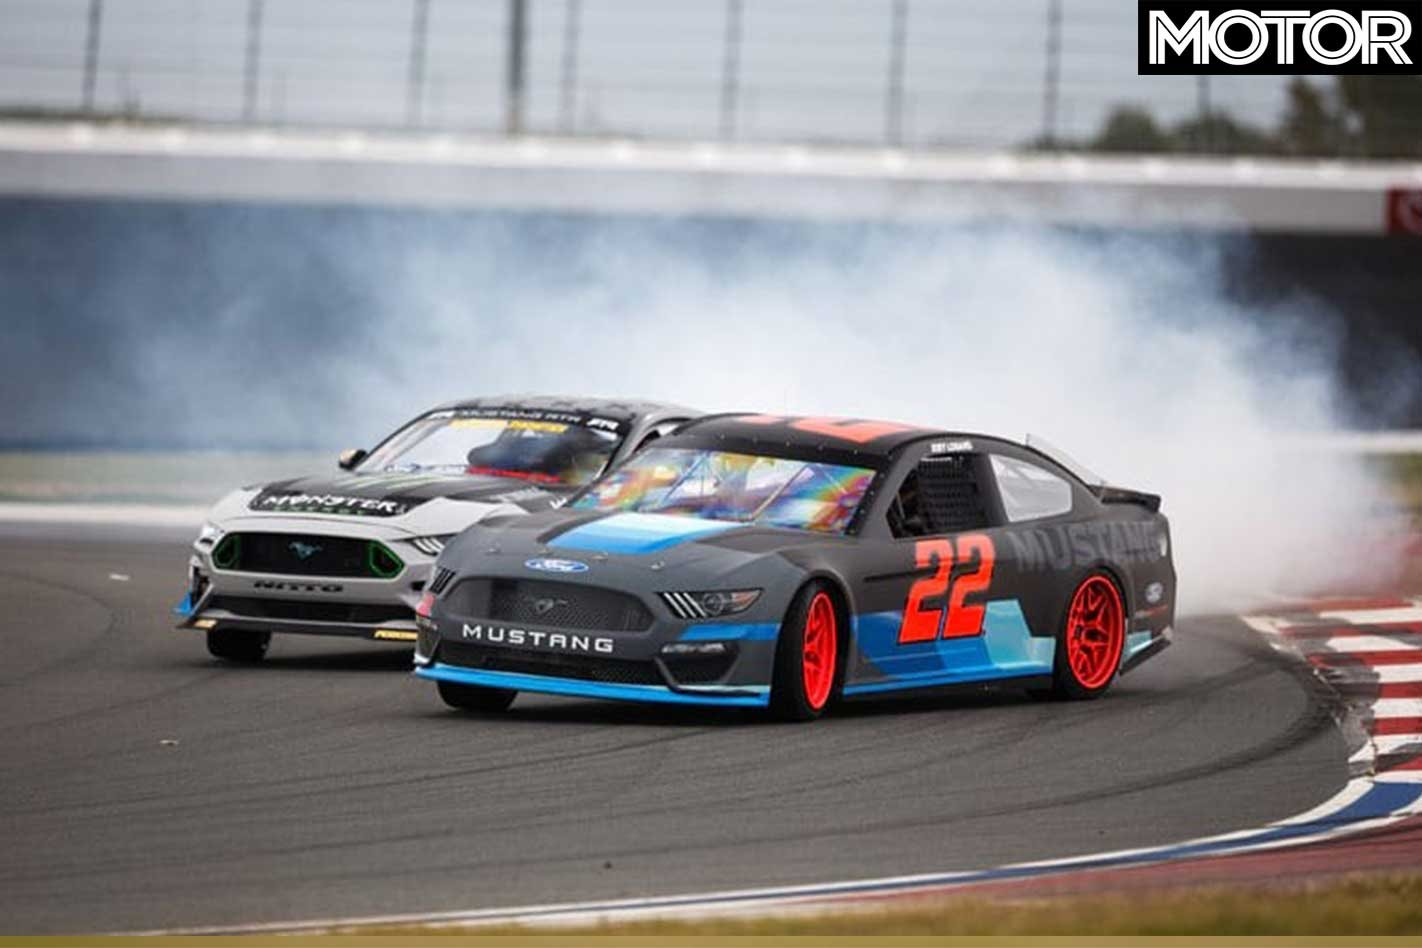 Formula drift champion vaughn gittin jr and 2018 nascar cup champion joey logano have taken introduced the 2019 ford nascar mustang to youtube by tandem